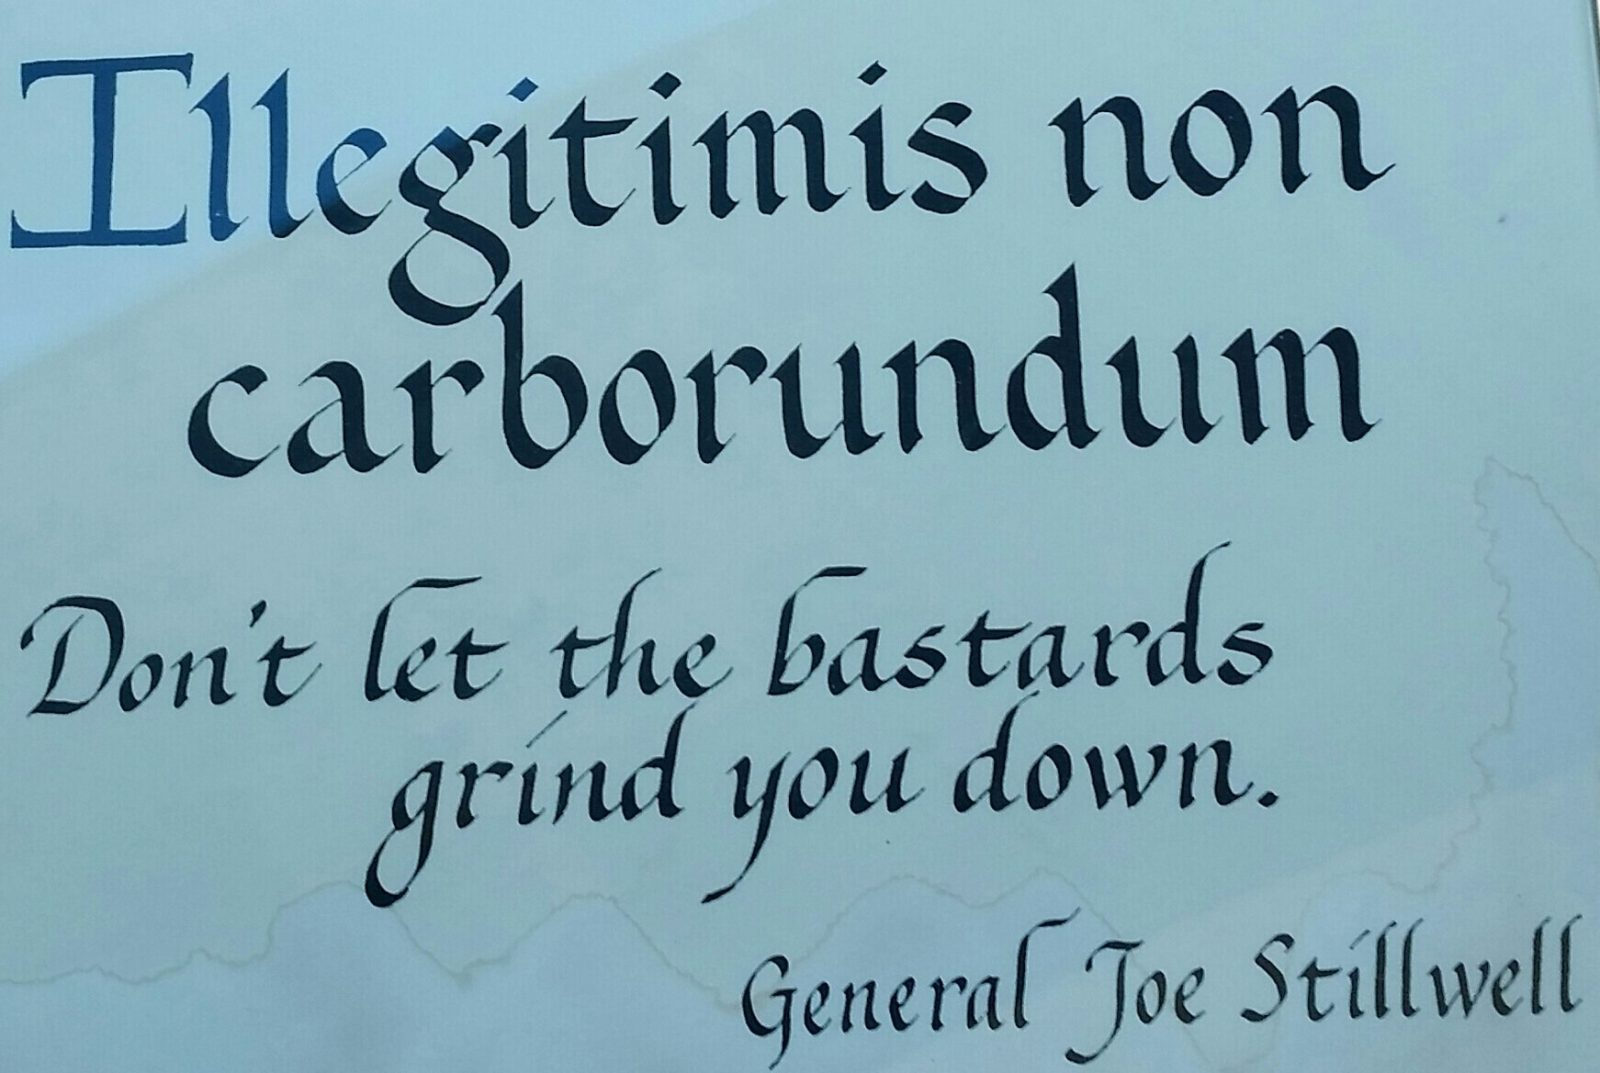 Don't let the bastards grind you down. General Stillwell